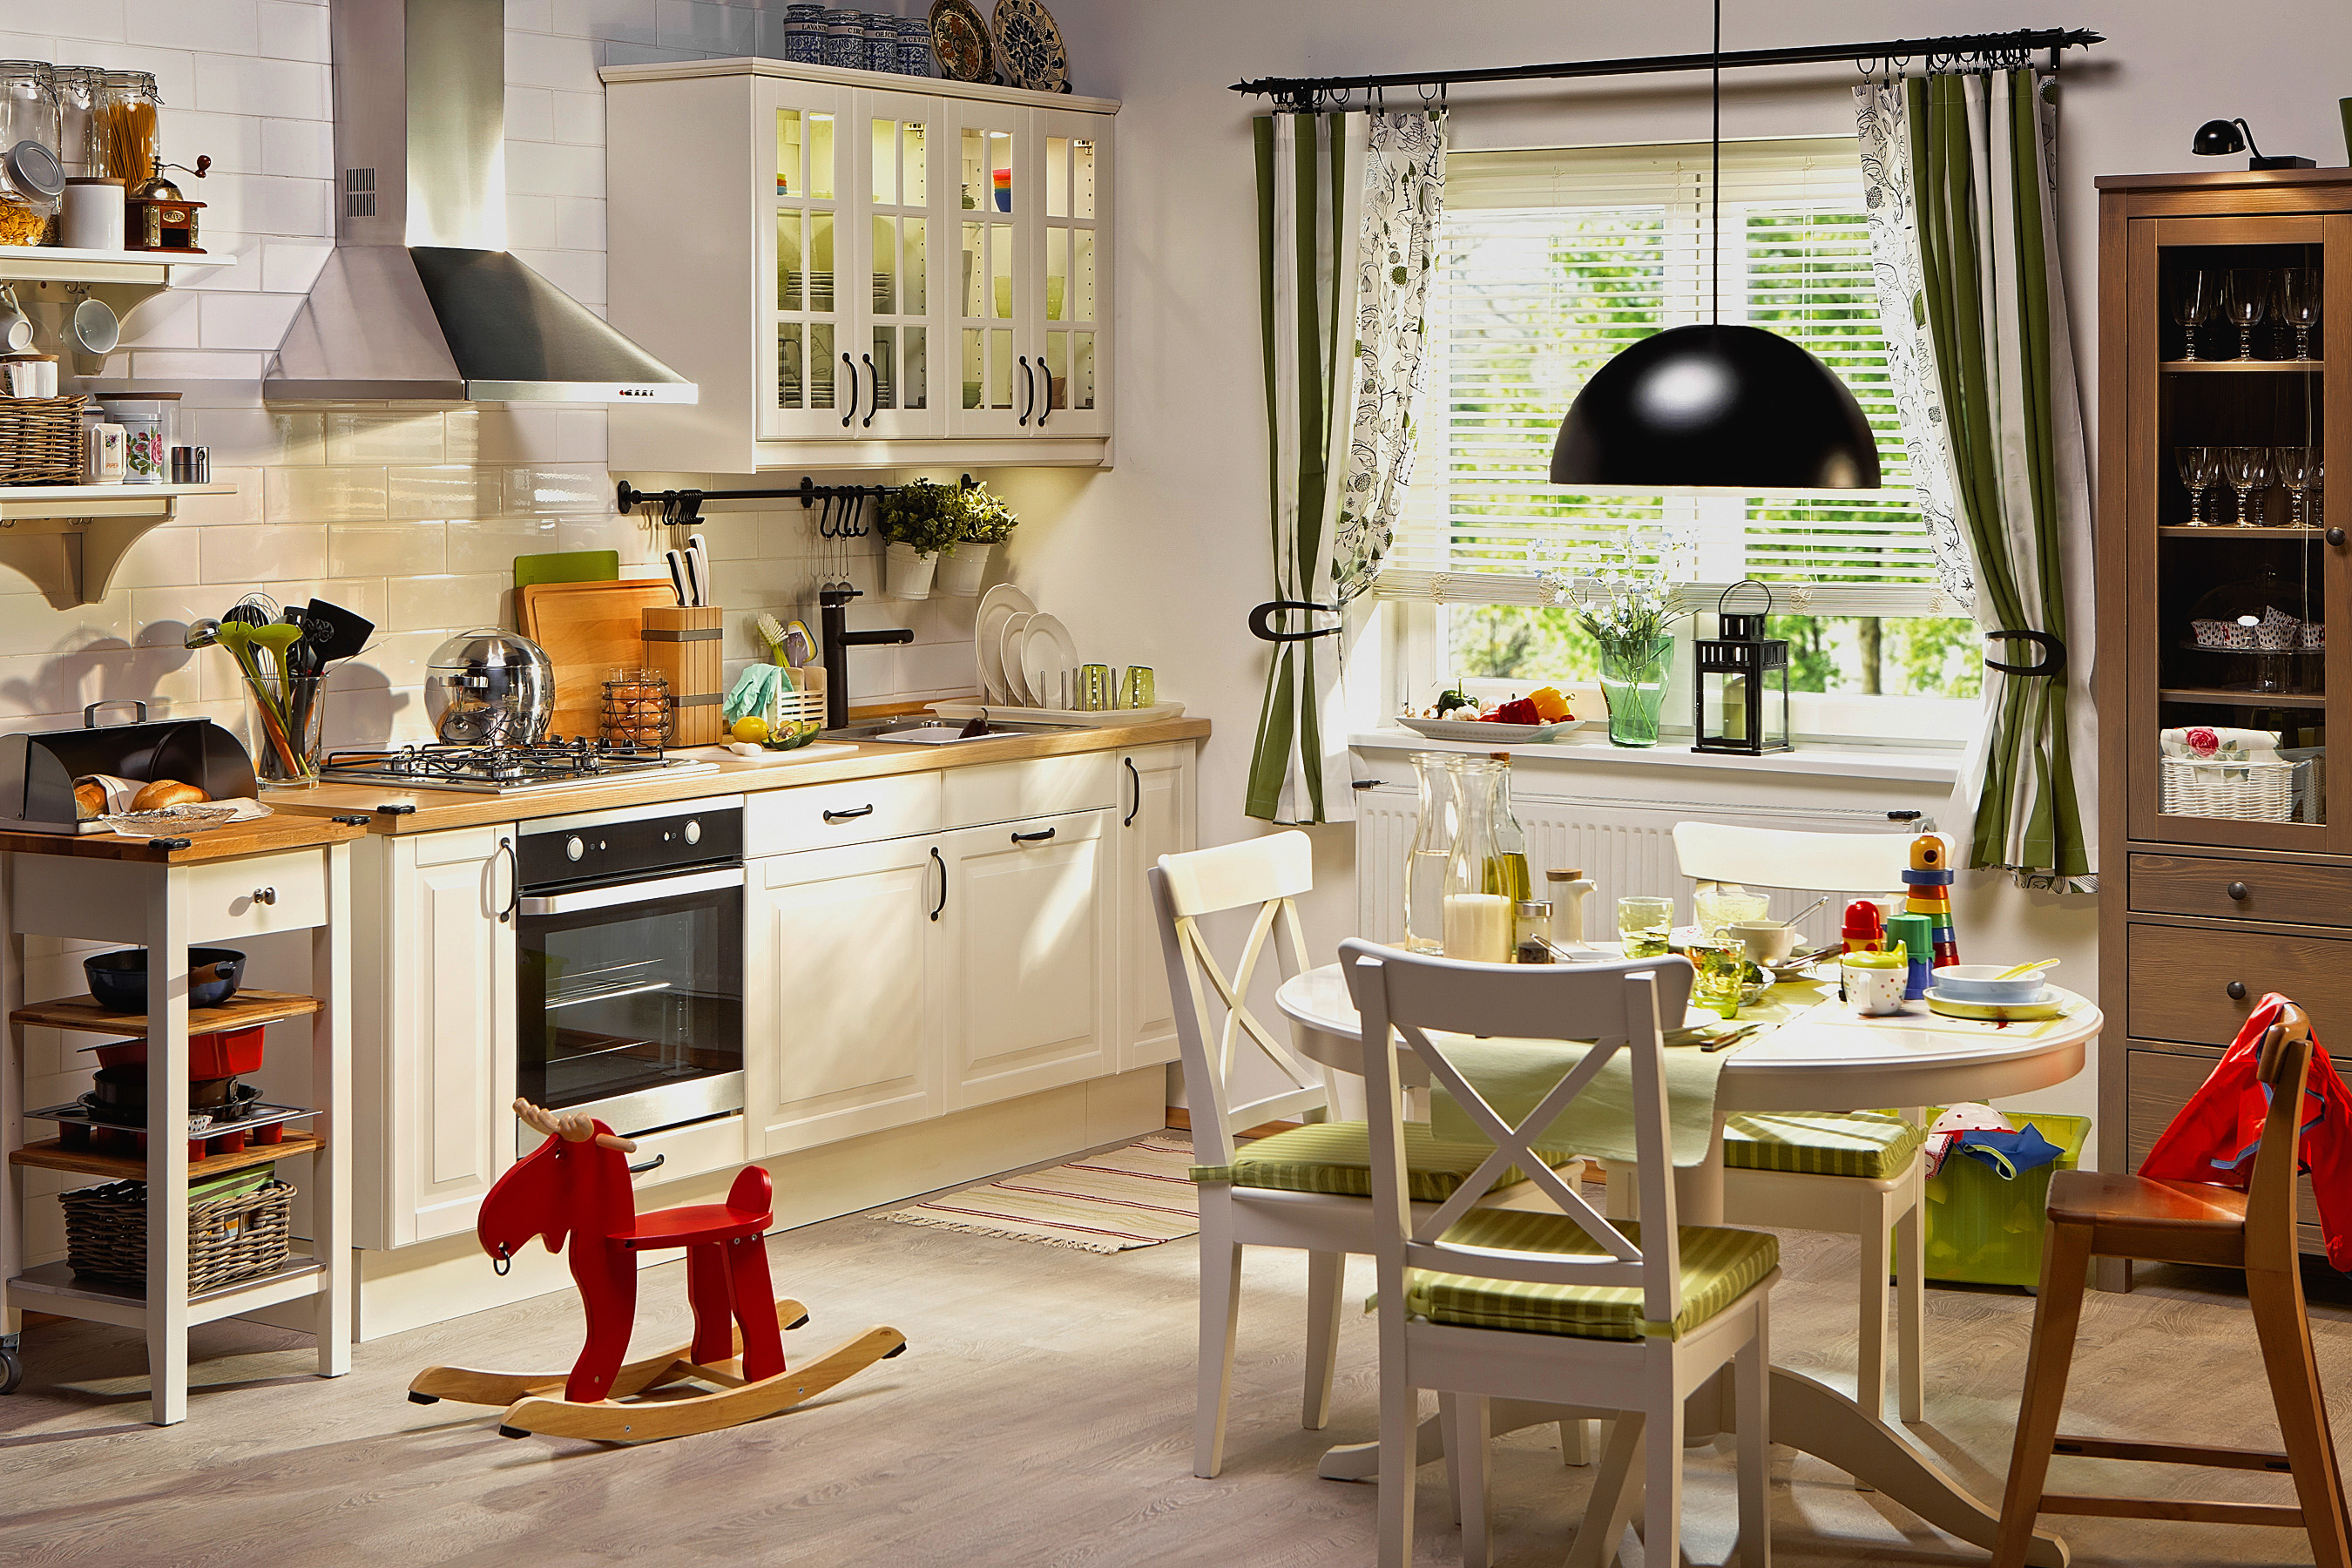 Ikea Afordable Kitchens 12